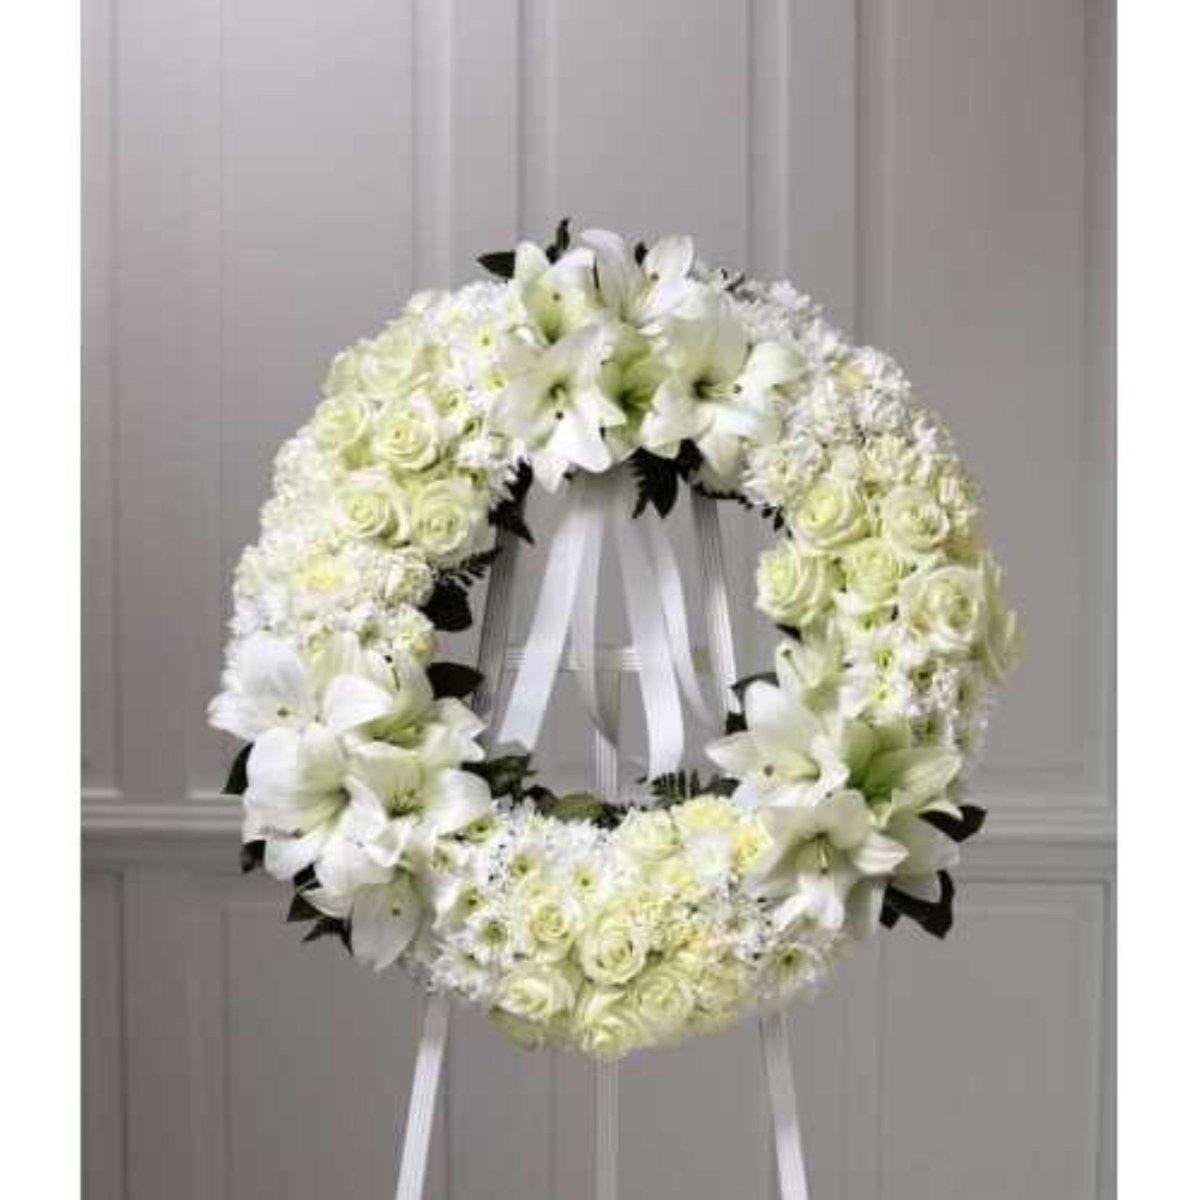 The FTD® Wreath of Remembrance in White - Shalimar Flower Shop